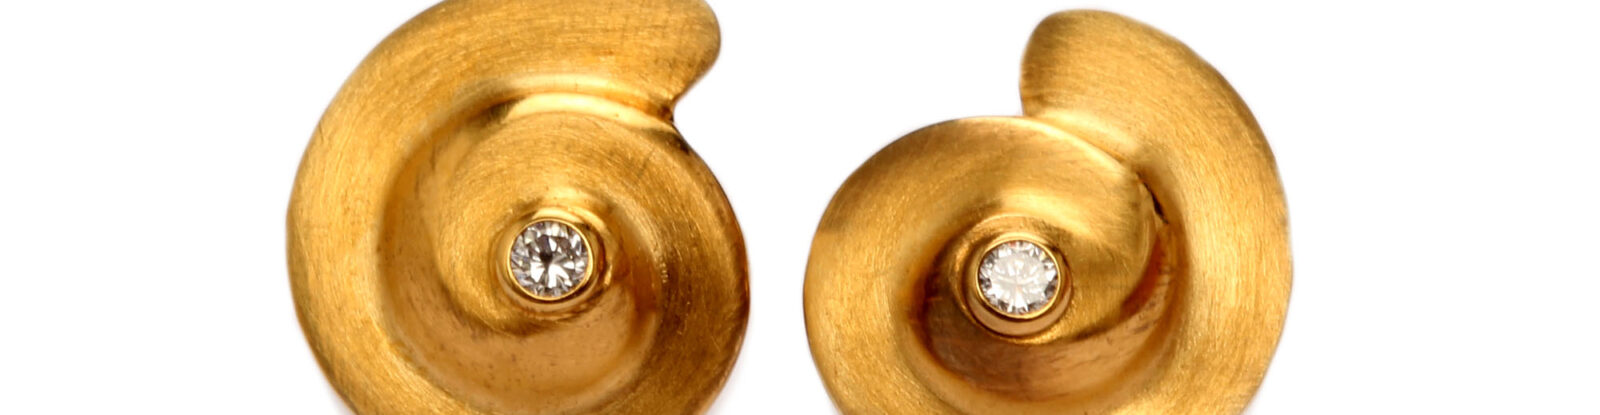 Ohrstecker in Gold mit Diamanten